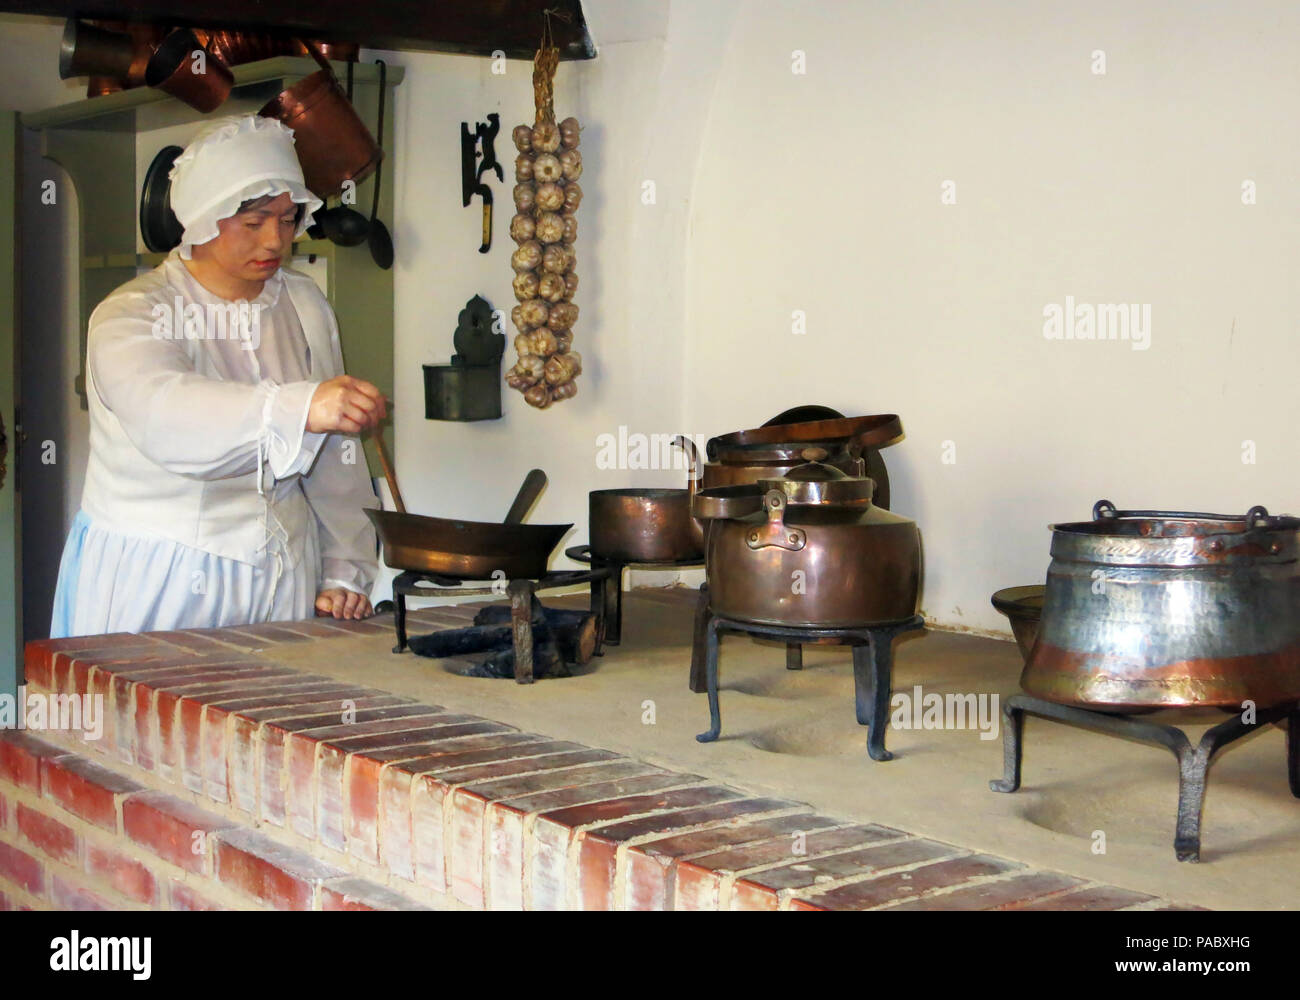 cooker in kitchen,  Uphagen's House, museum, Długa, Gdańsk, Pomerania, Poland - Stock Image